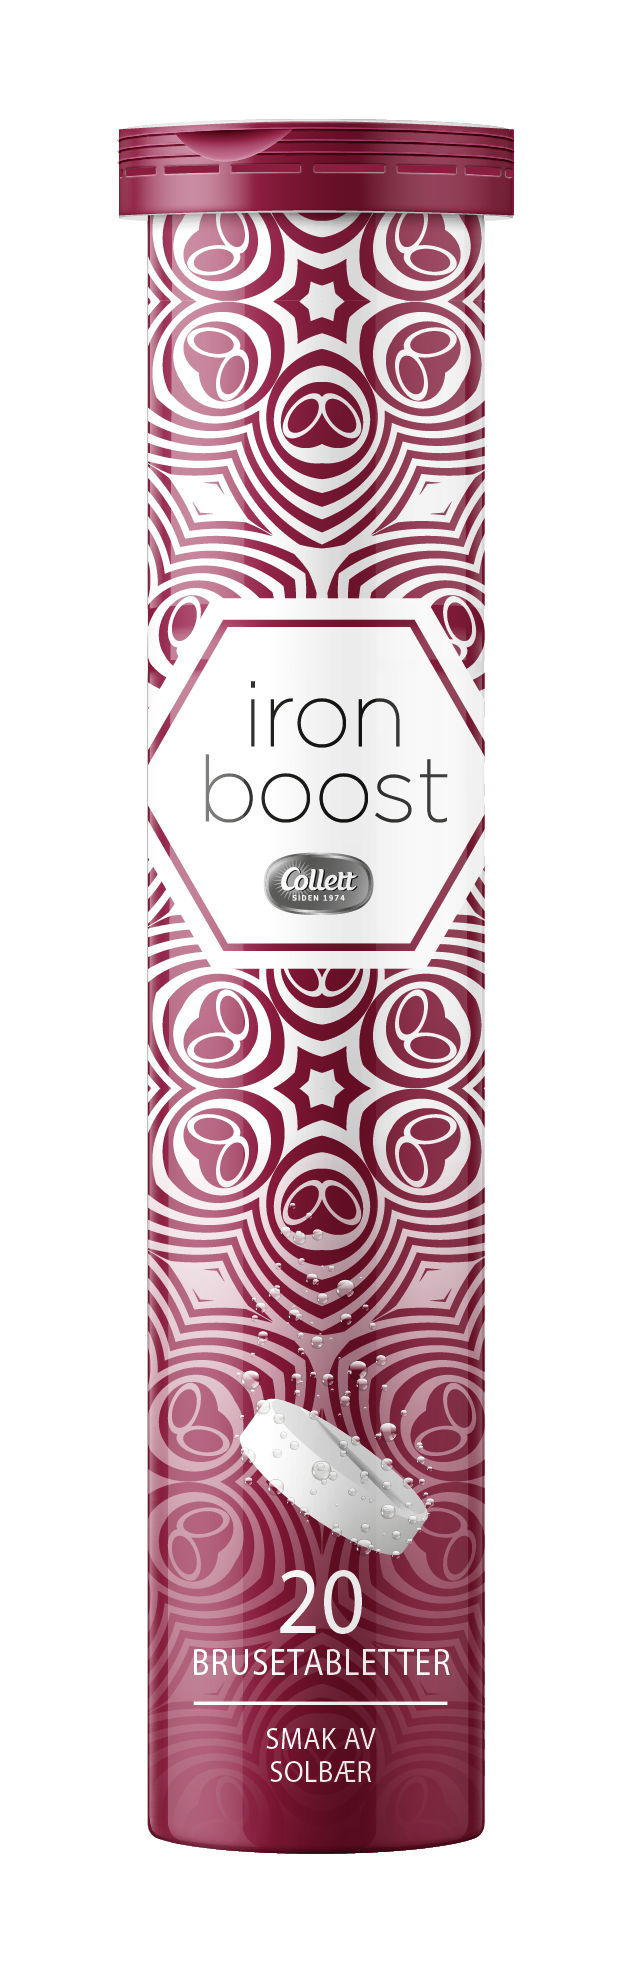 Collett iron boost brusetabletter